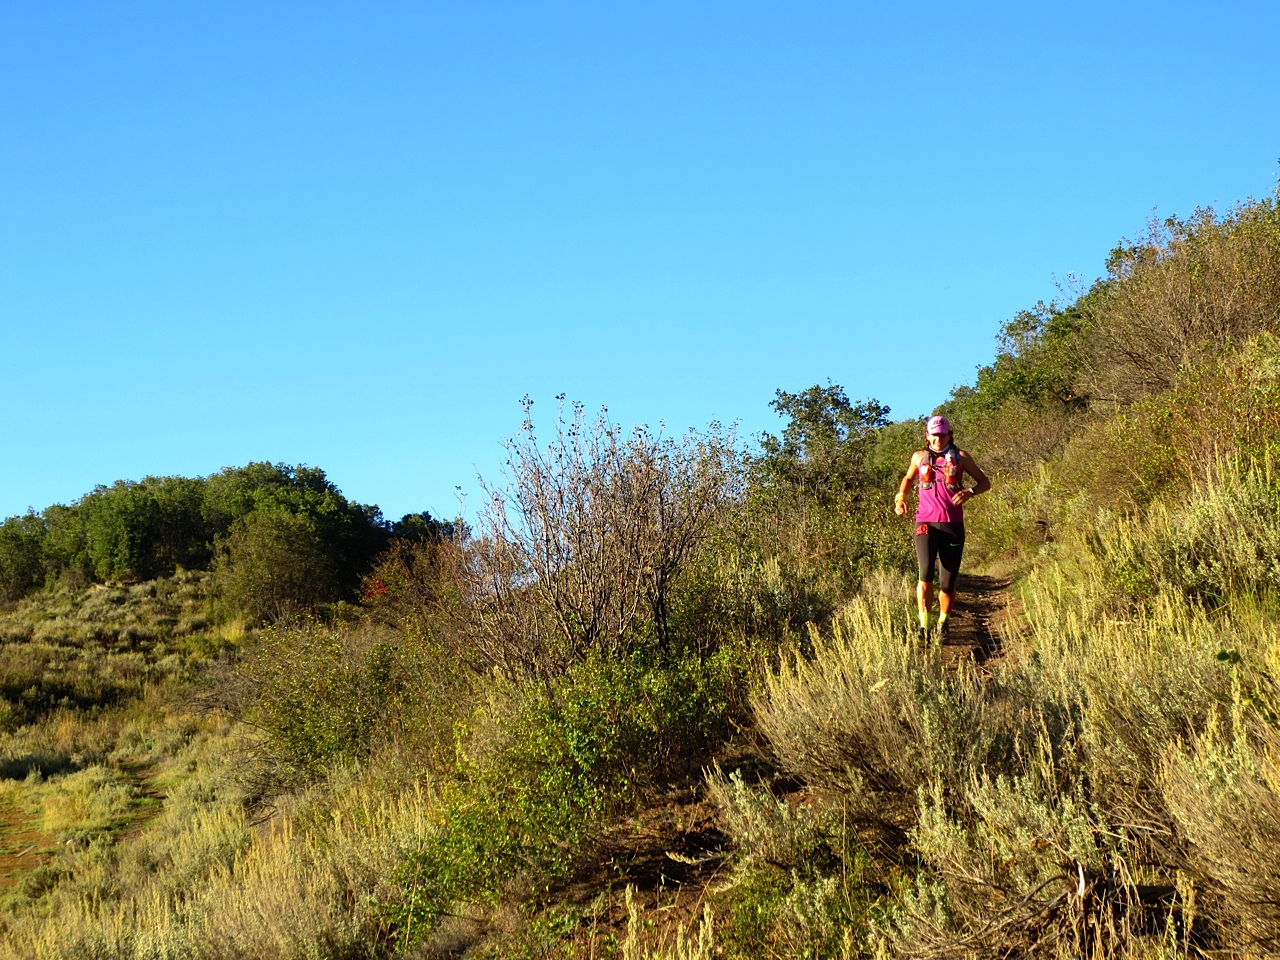 Run Rabbit Run 100 Race Report: 7 Things I Learned About Myself After My First DNF.